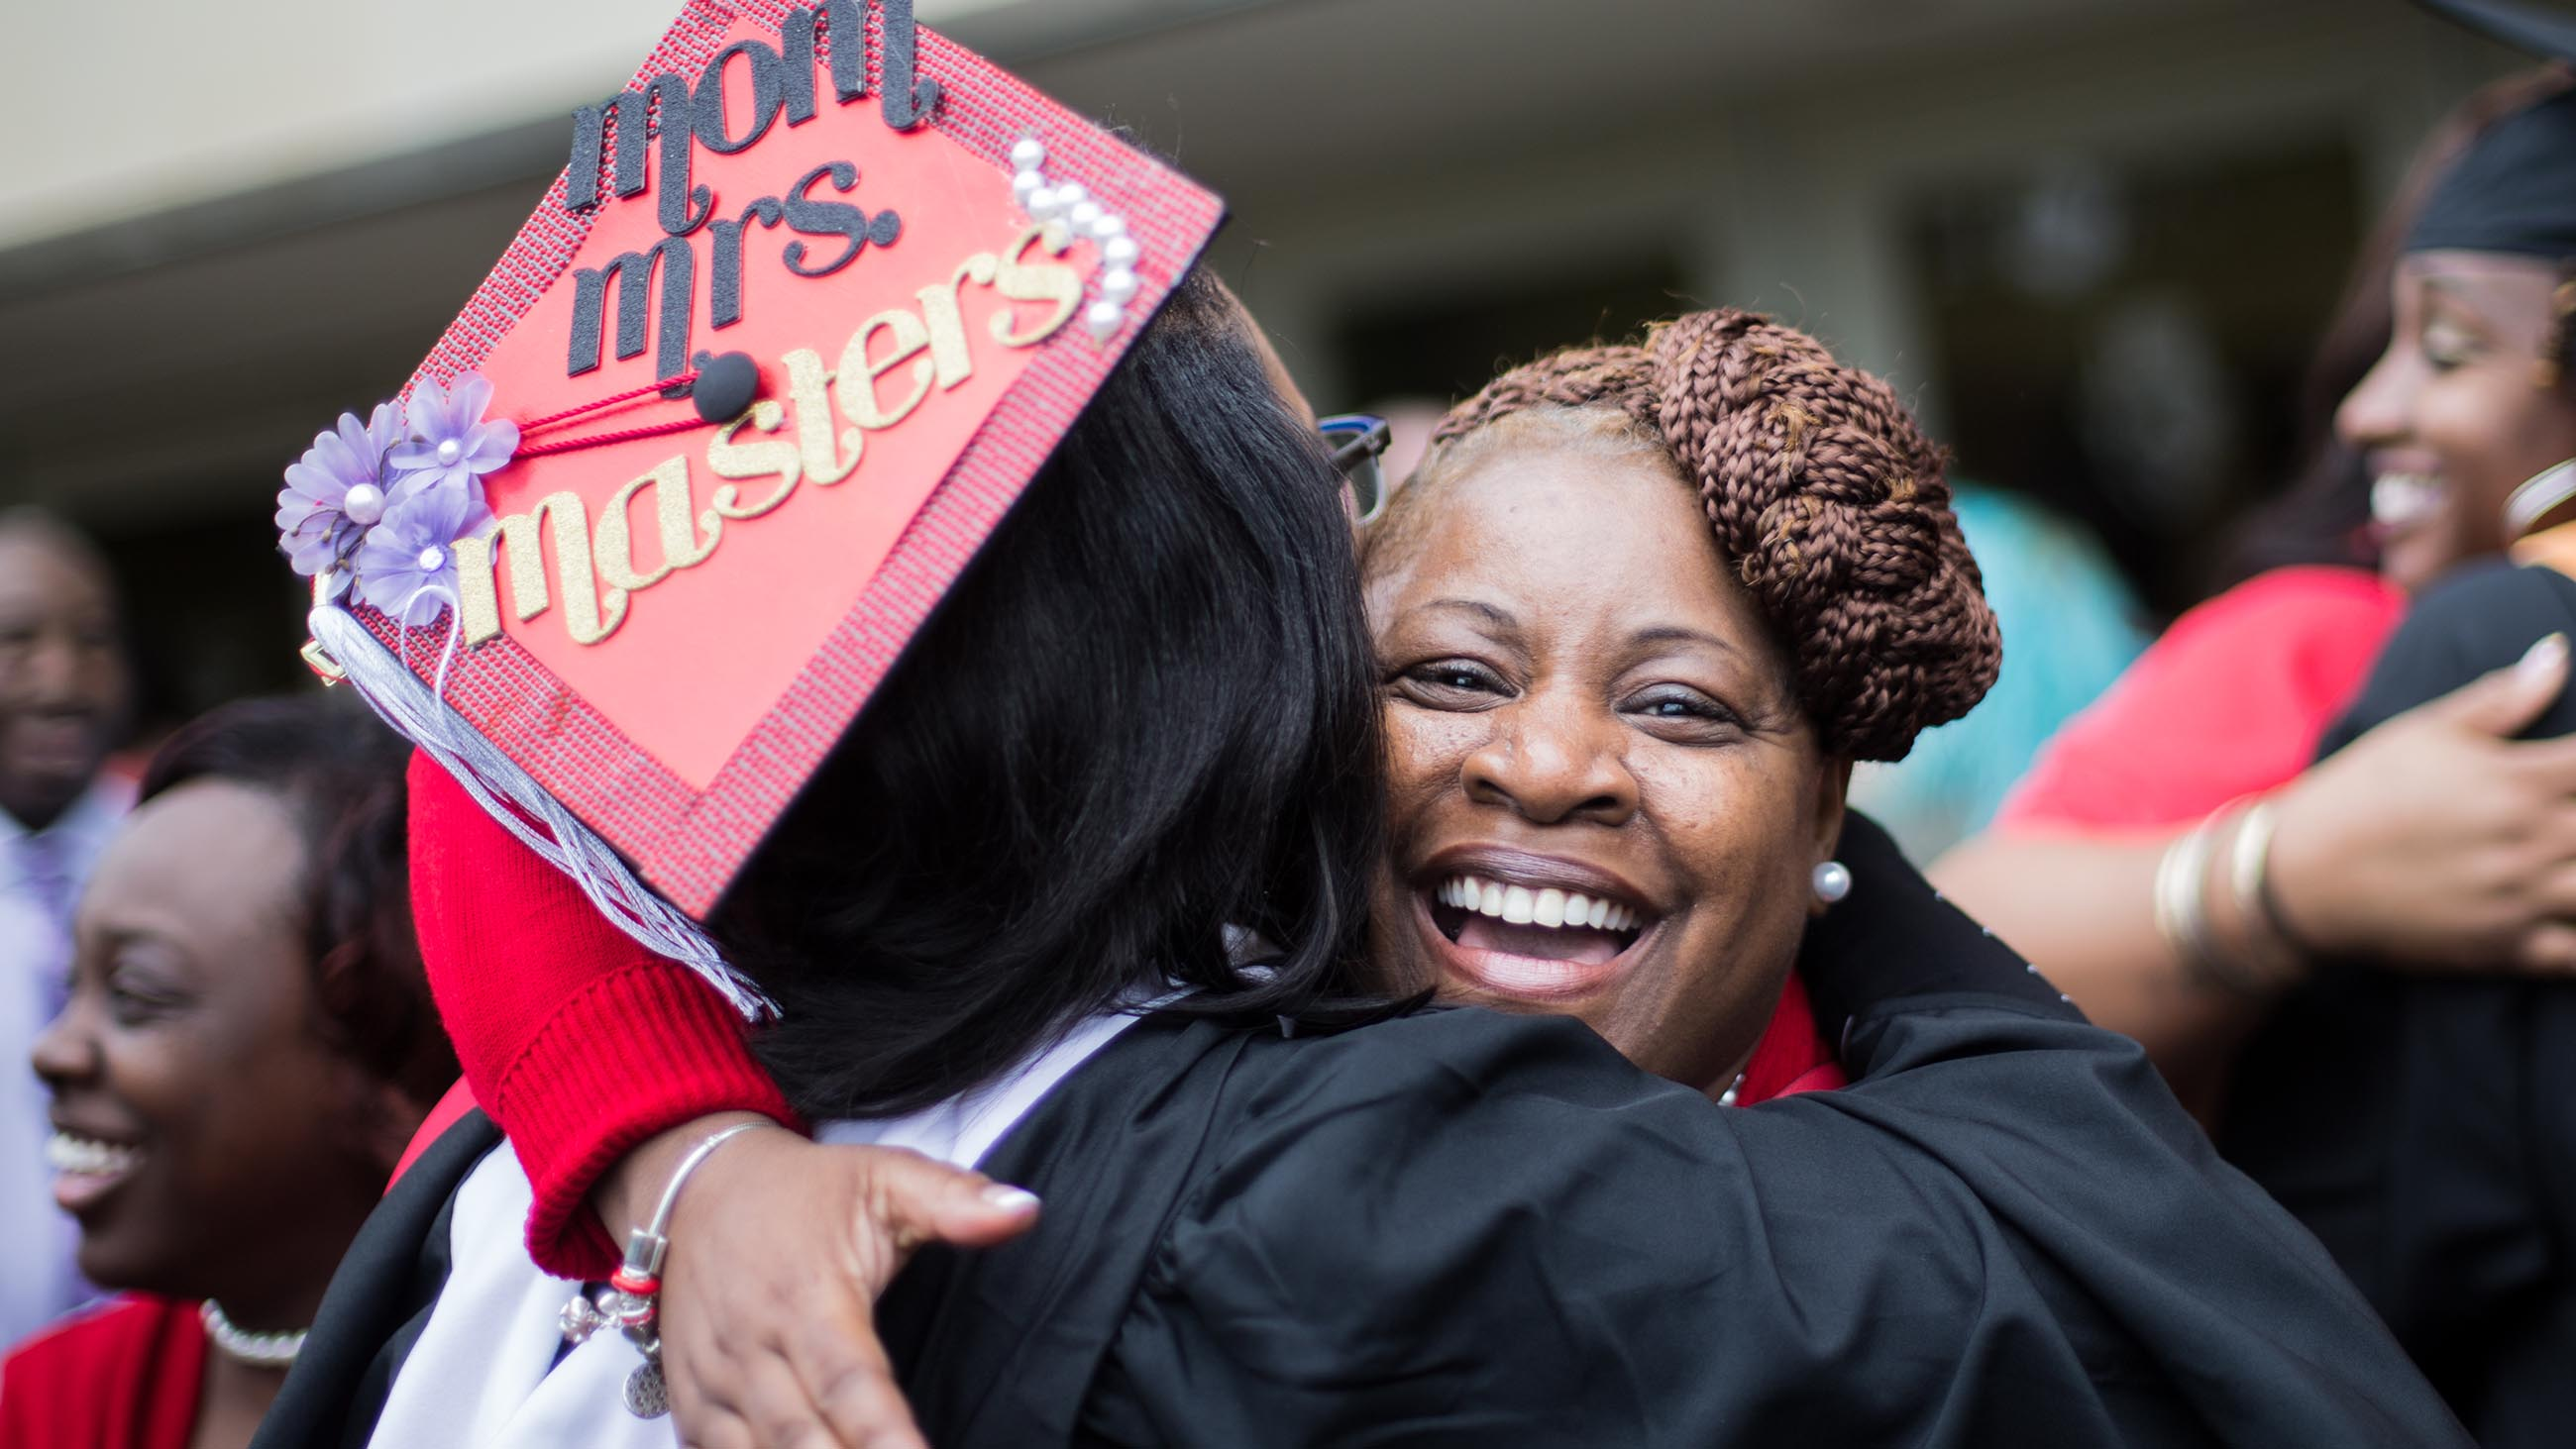 Family members hugging at commencement